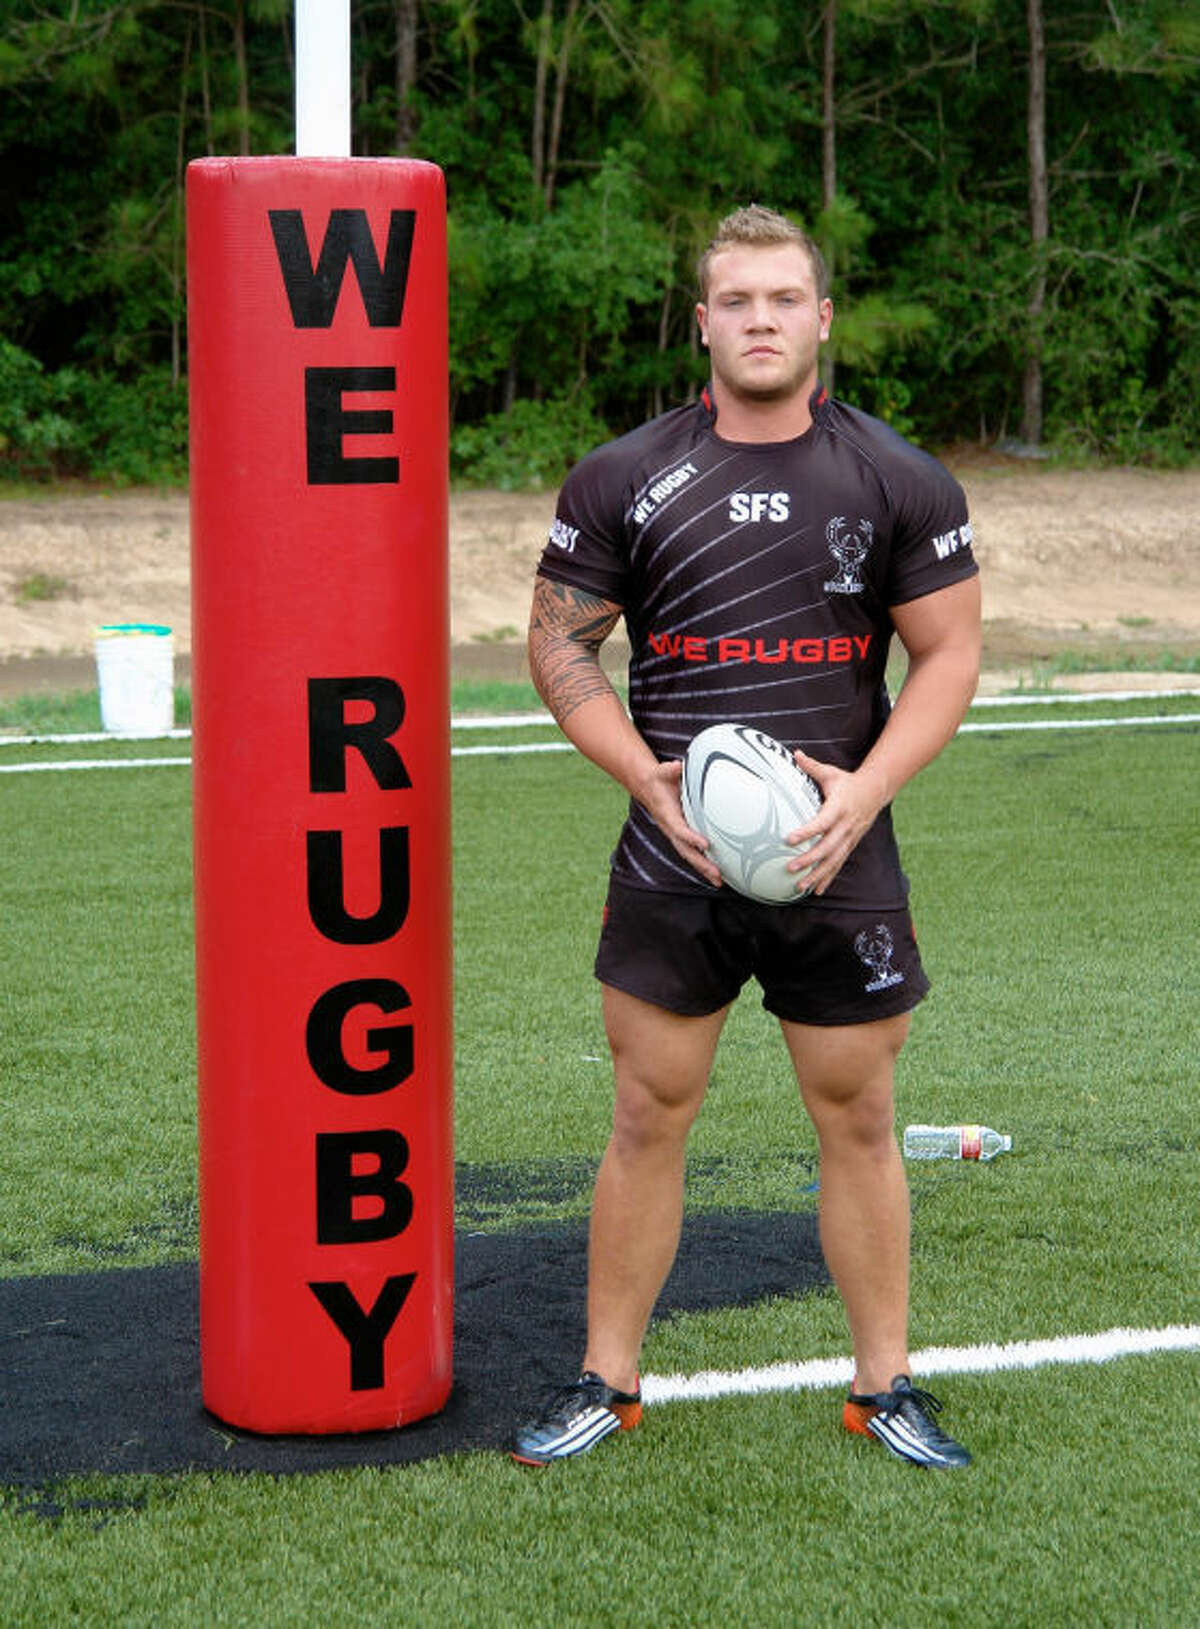 WE Rugby player Jordan Allan has played rugby in both Wales and Canada. WE Rugby recently qualified for the Men's Senior Club 7s Championships.